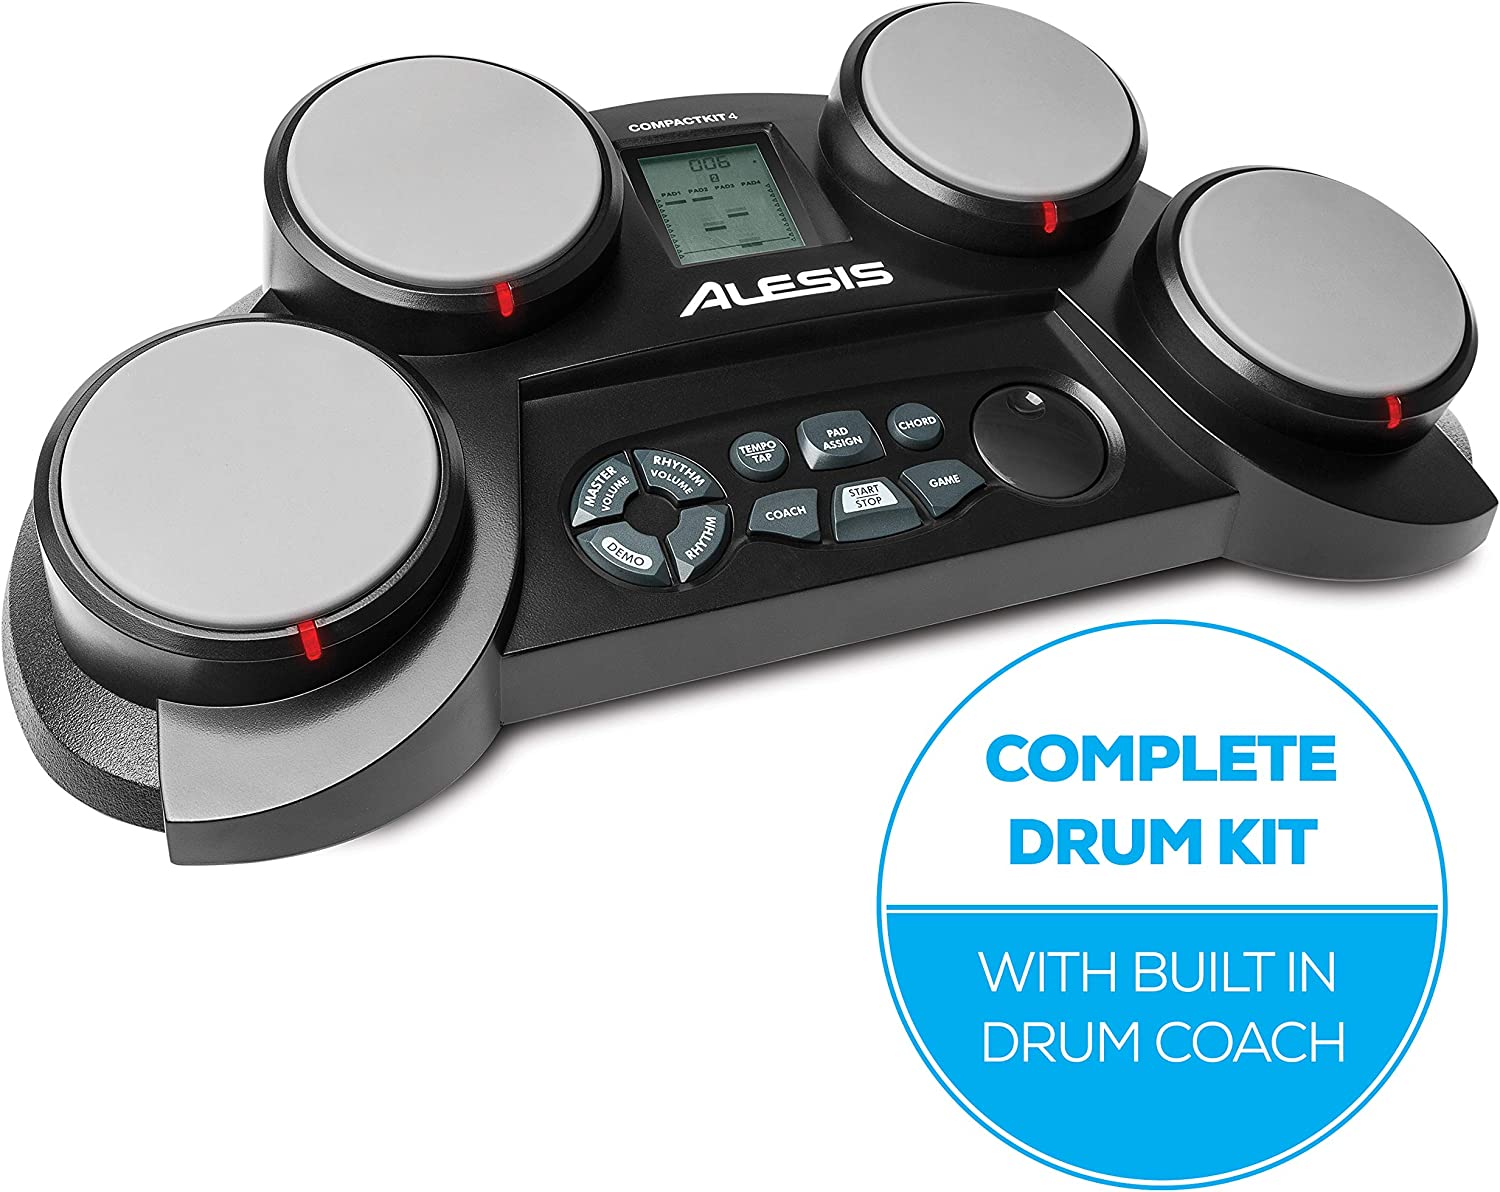 Alesis 4-Pad Electronic Drum set – Best for portability